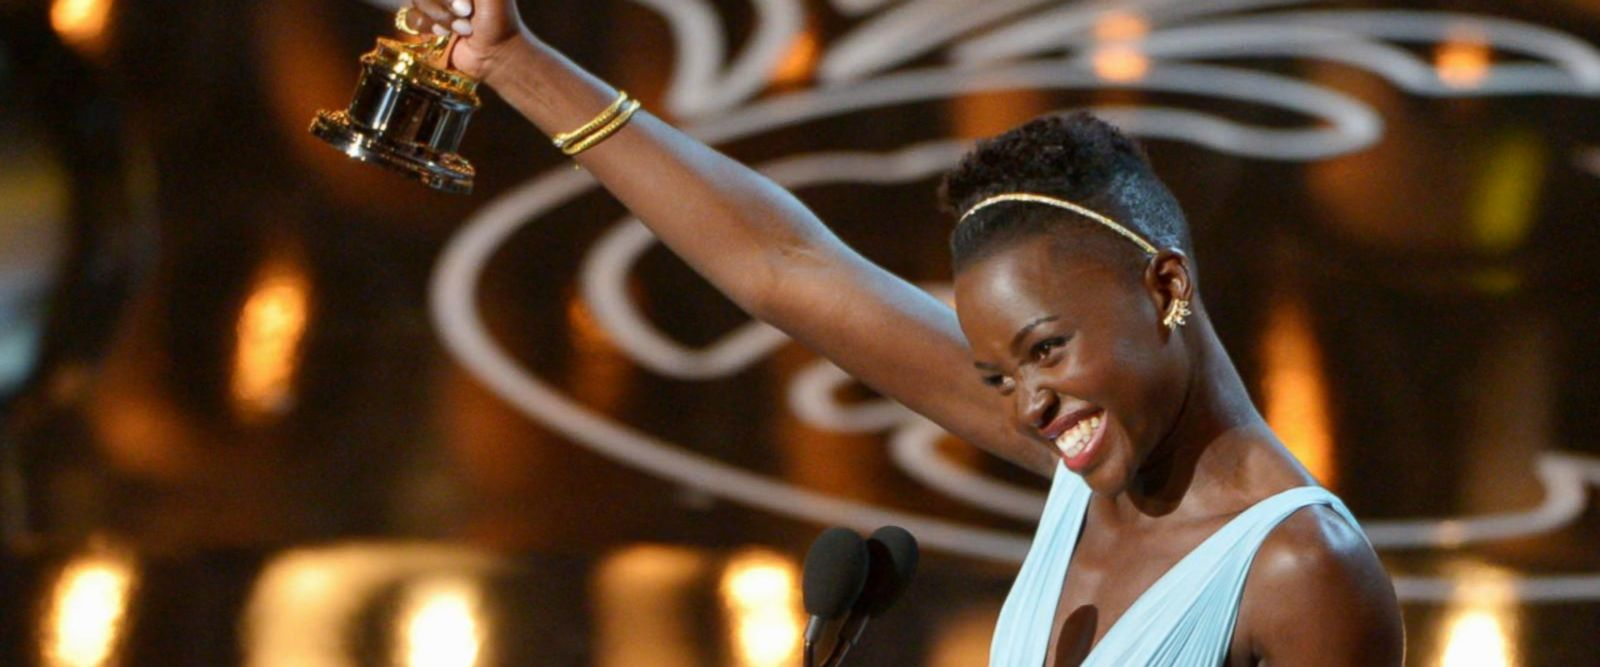 VIDEO: Actress Lupita Nyong'o steps forward with allegations of sexual harassment involving Harvey Weinstein